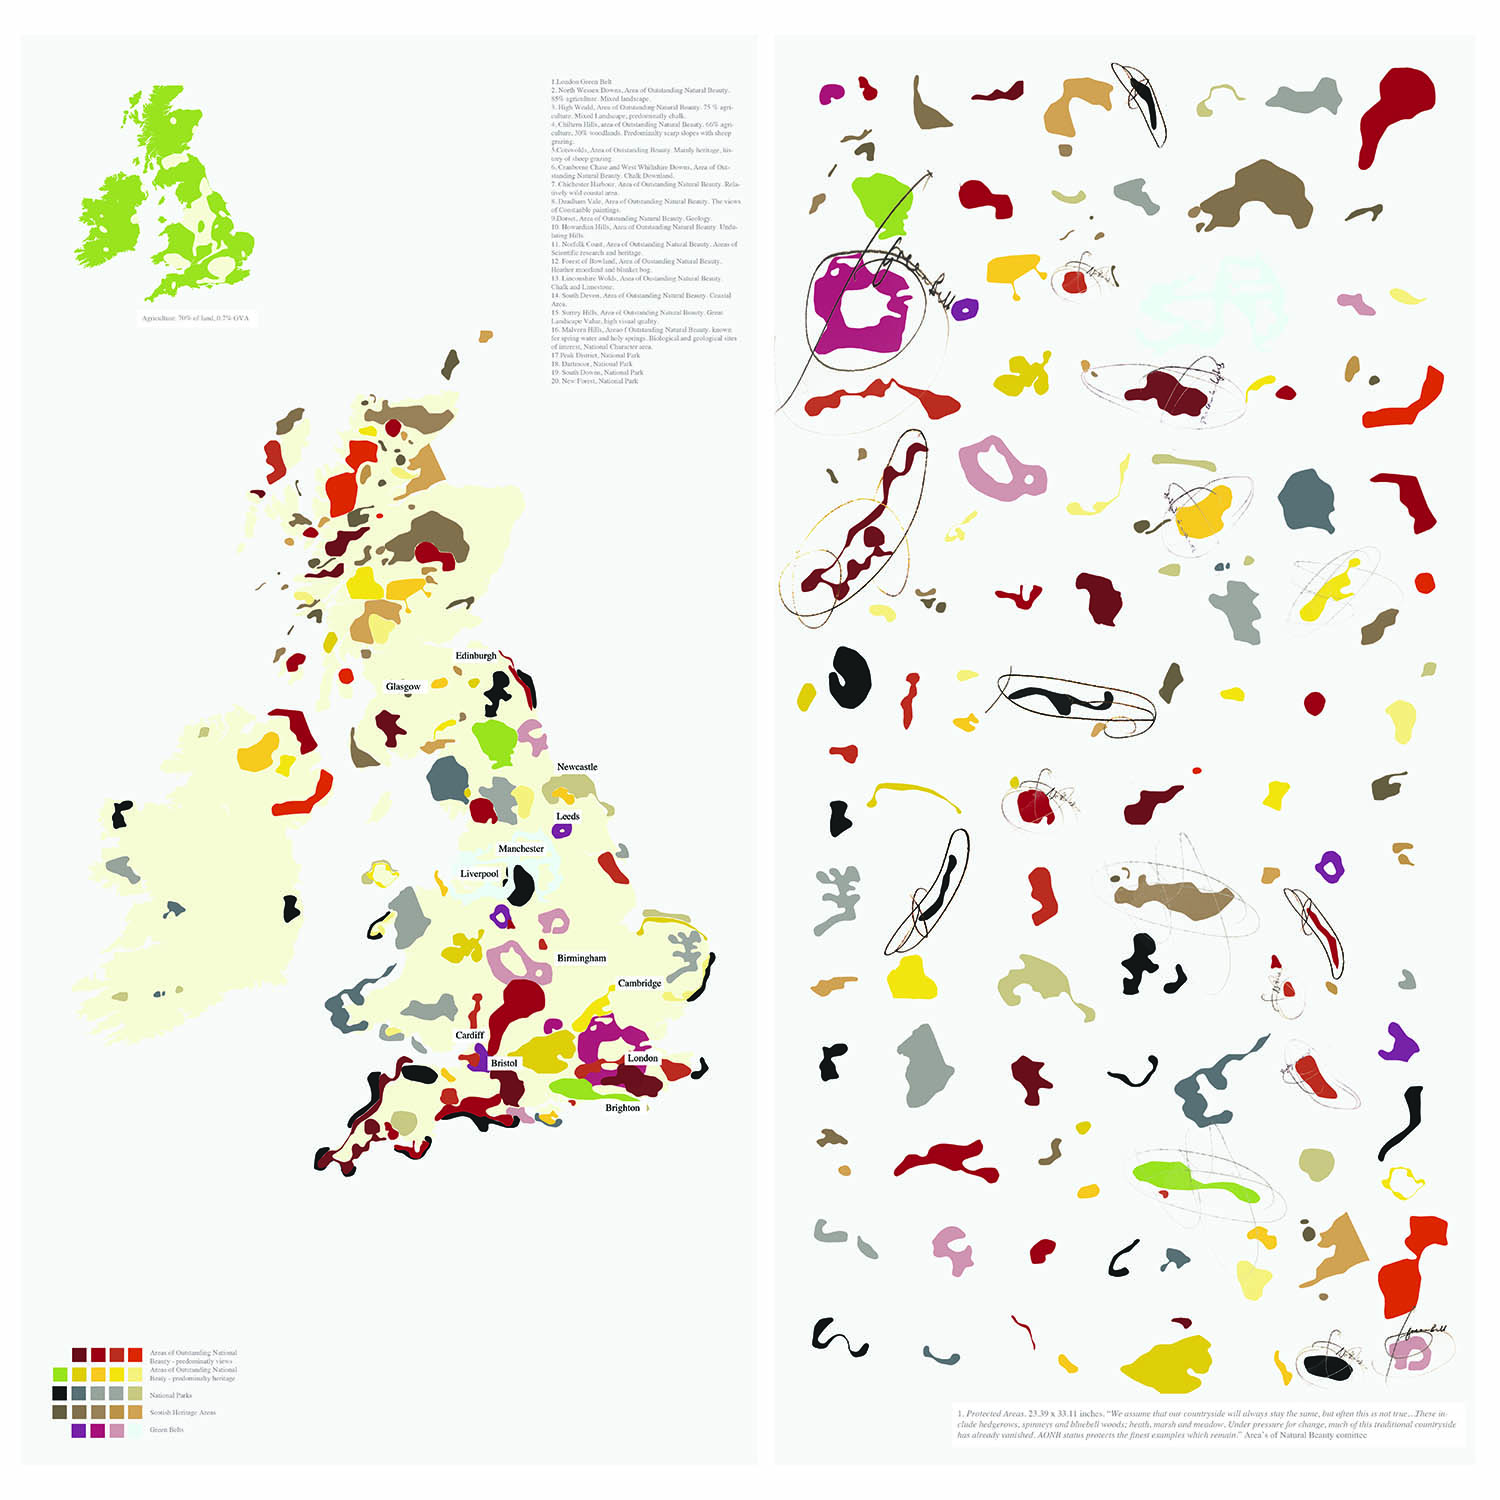 PARTI_04_MaterialMatters_Drawing_England.jpg